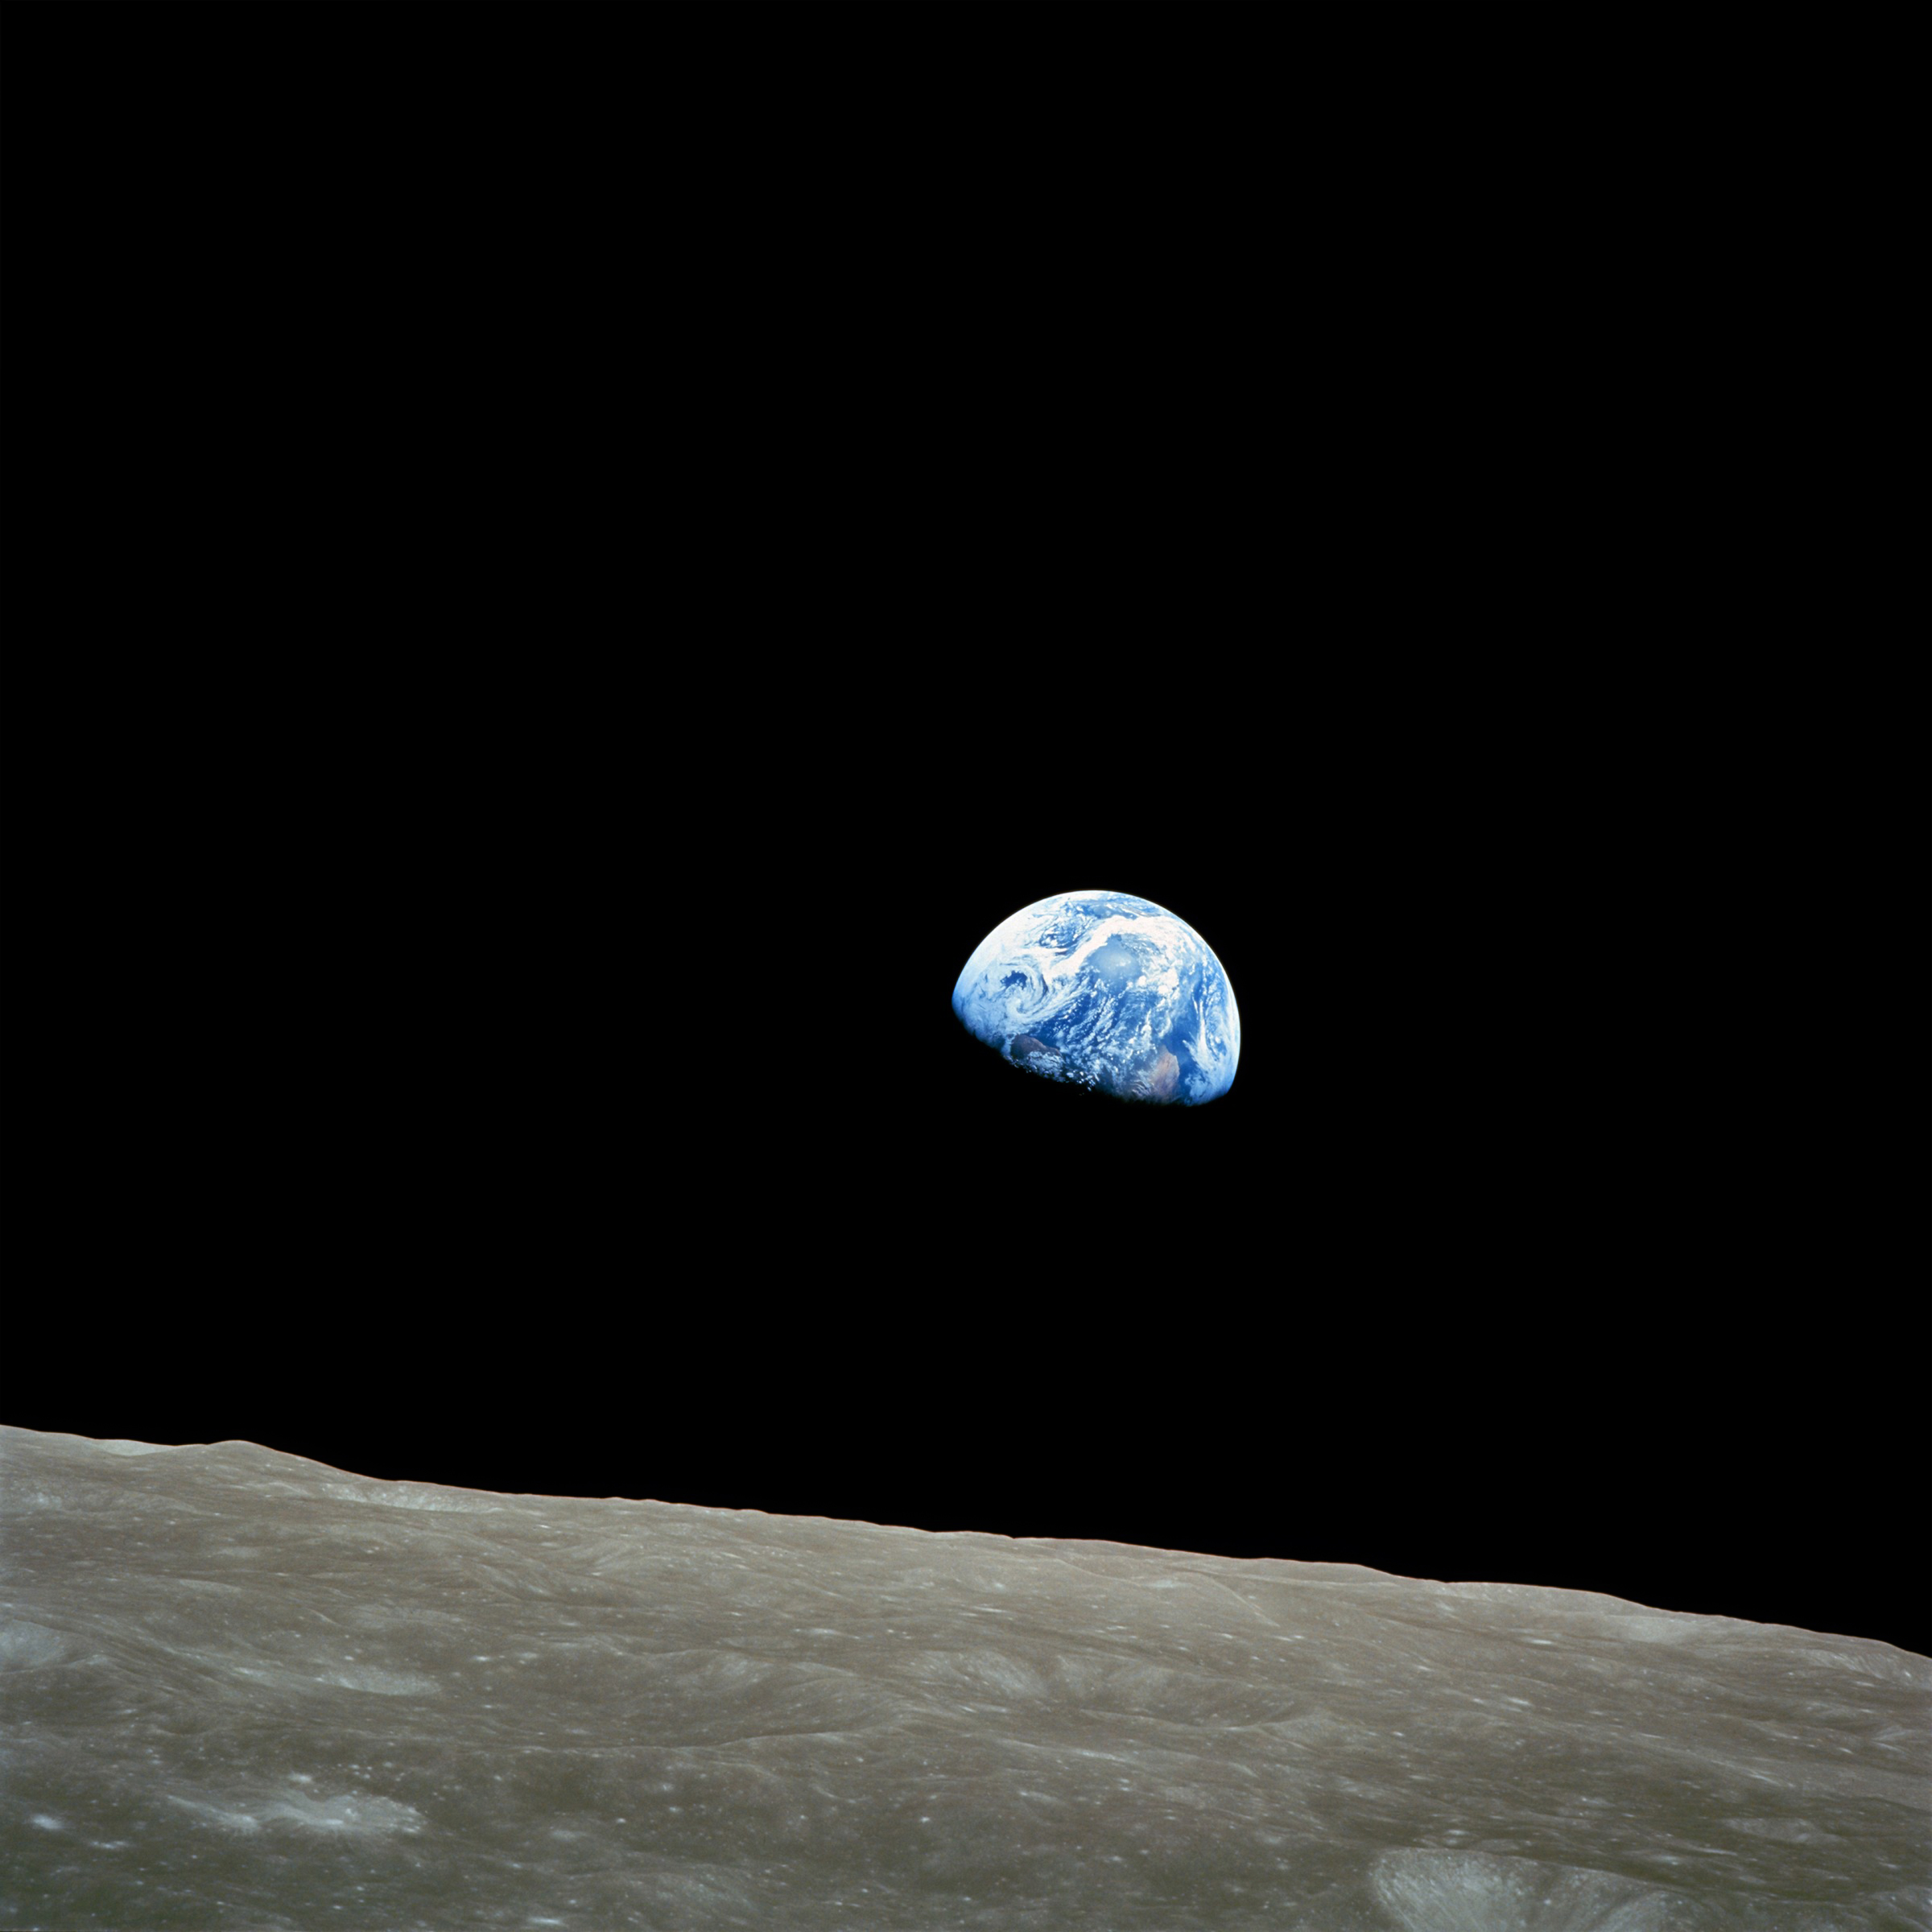 Earthrise - Wikipedia